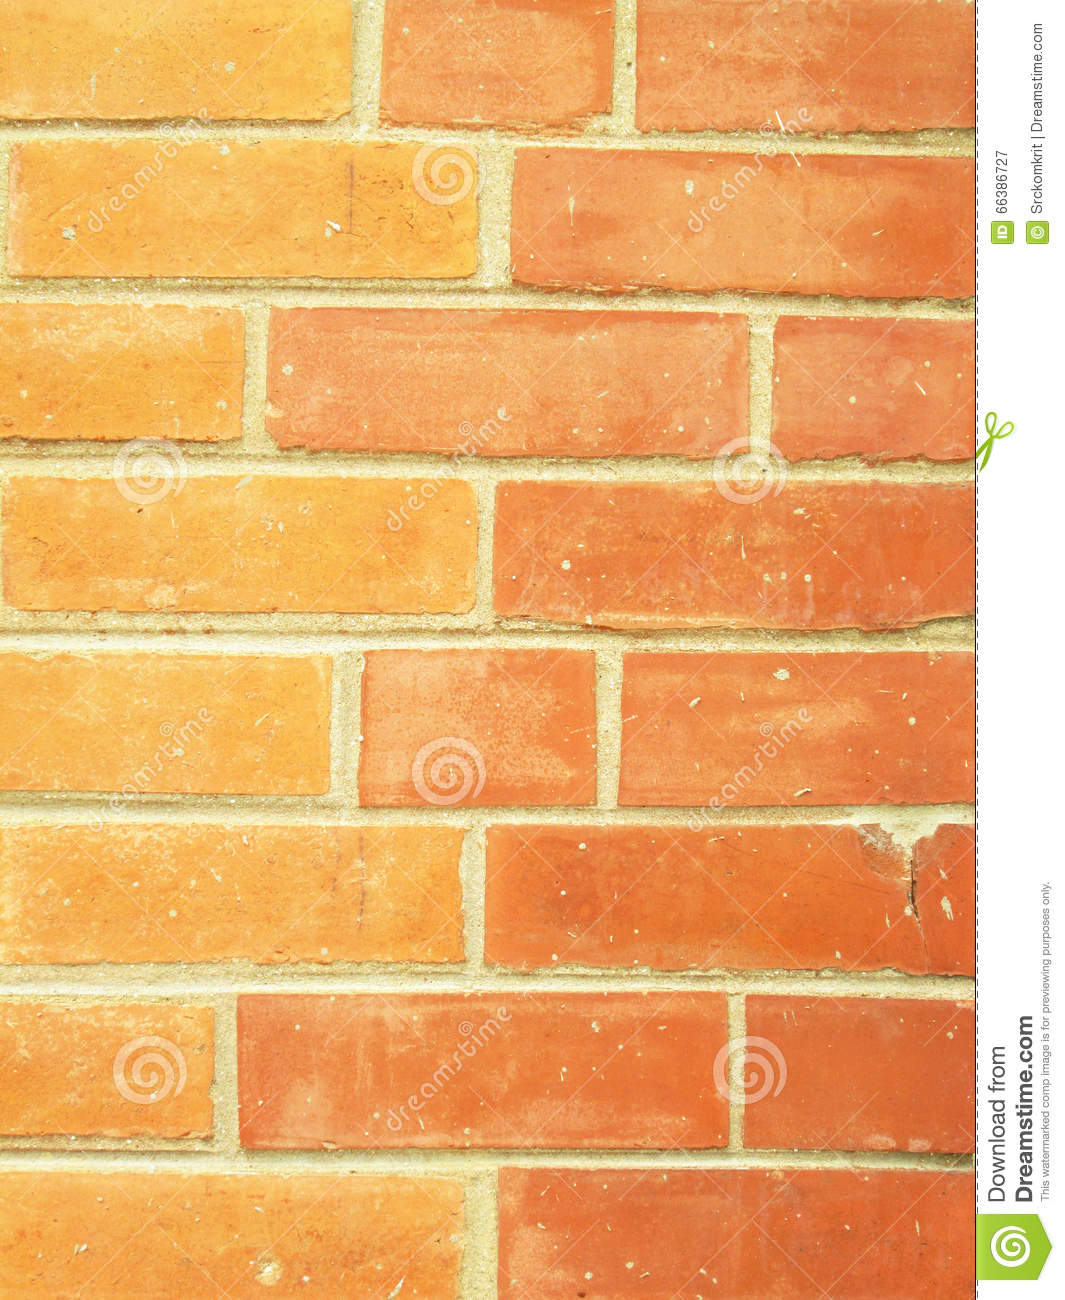 Brick Wall With Two Different Colors Of Bricks Stock Image - Image ...